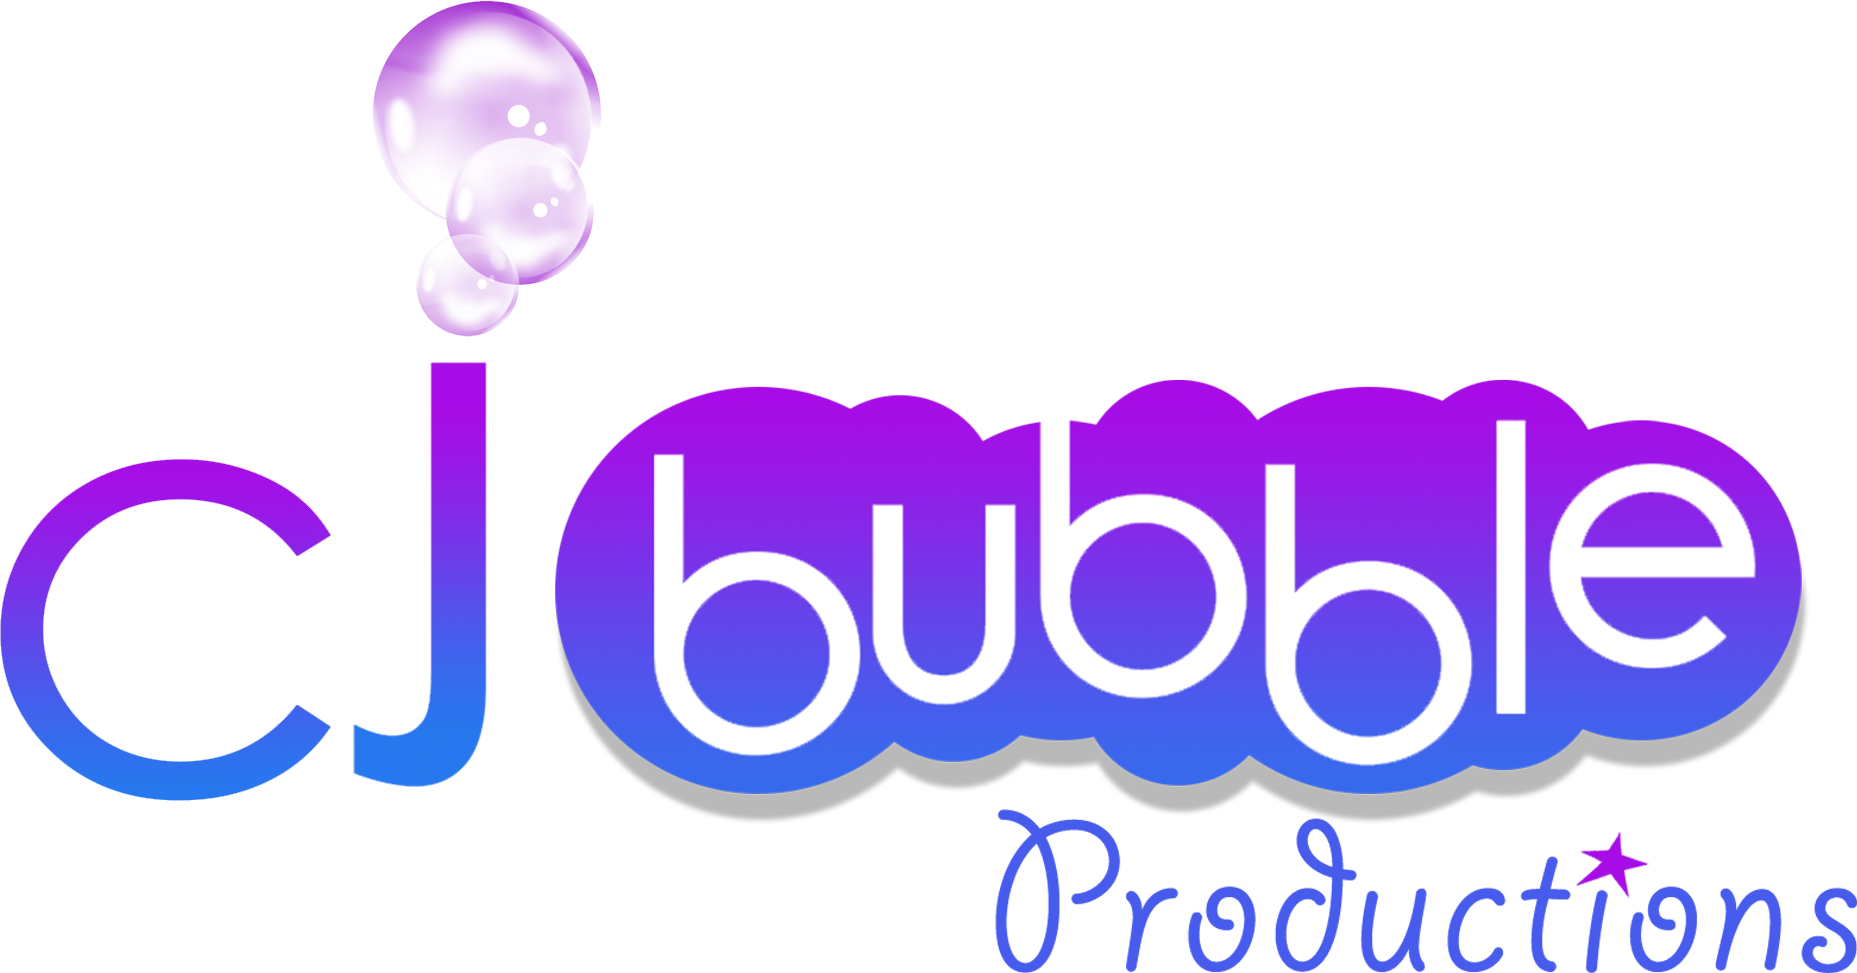 CJ Bubble